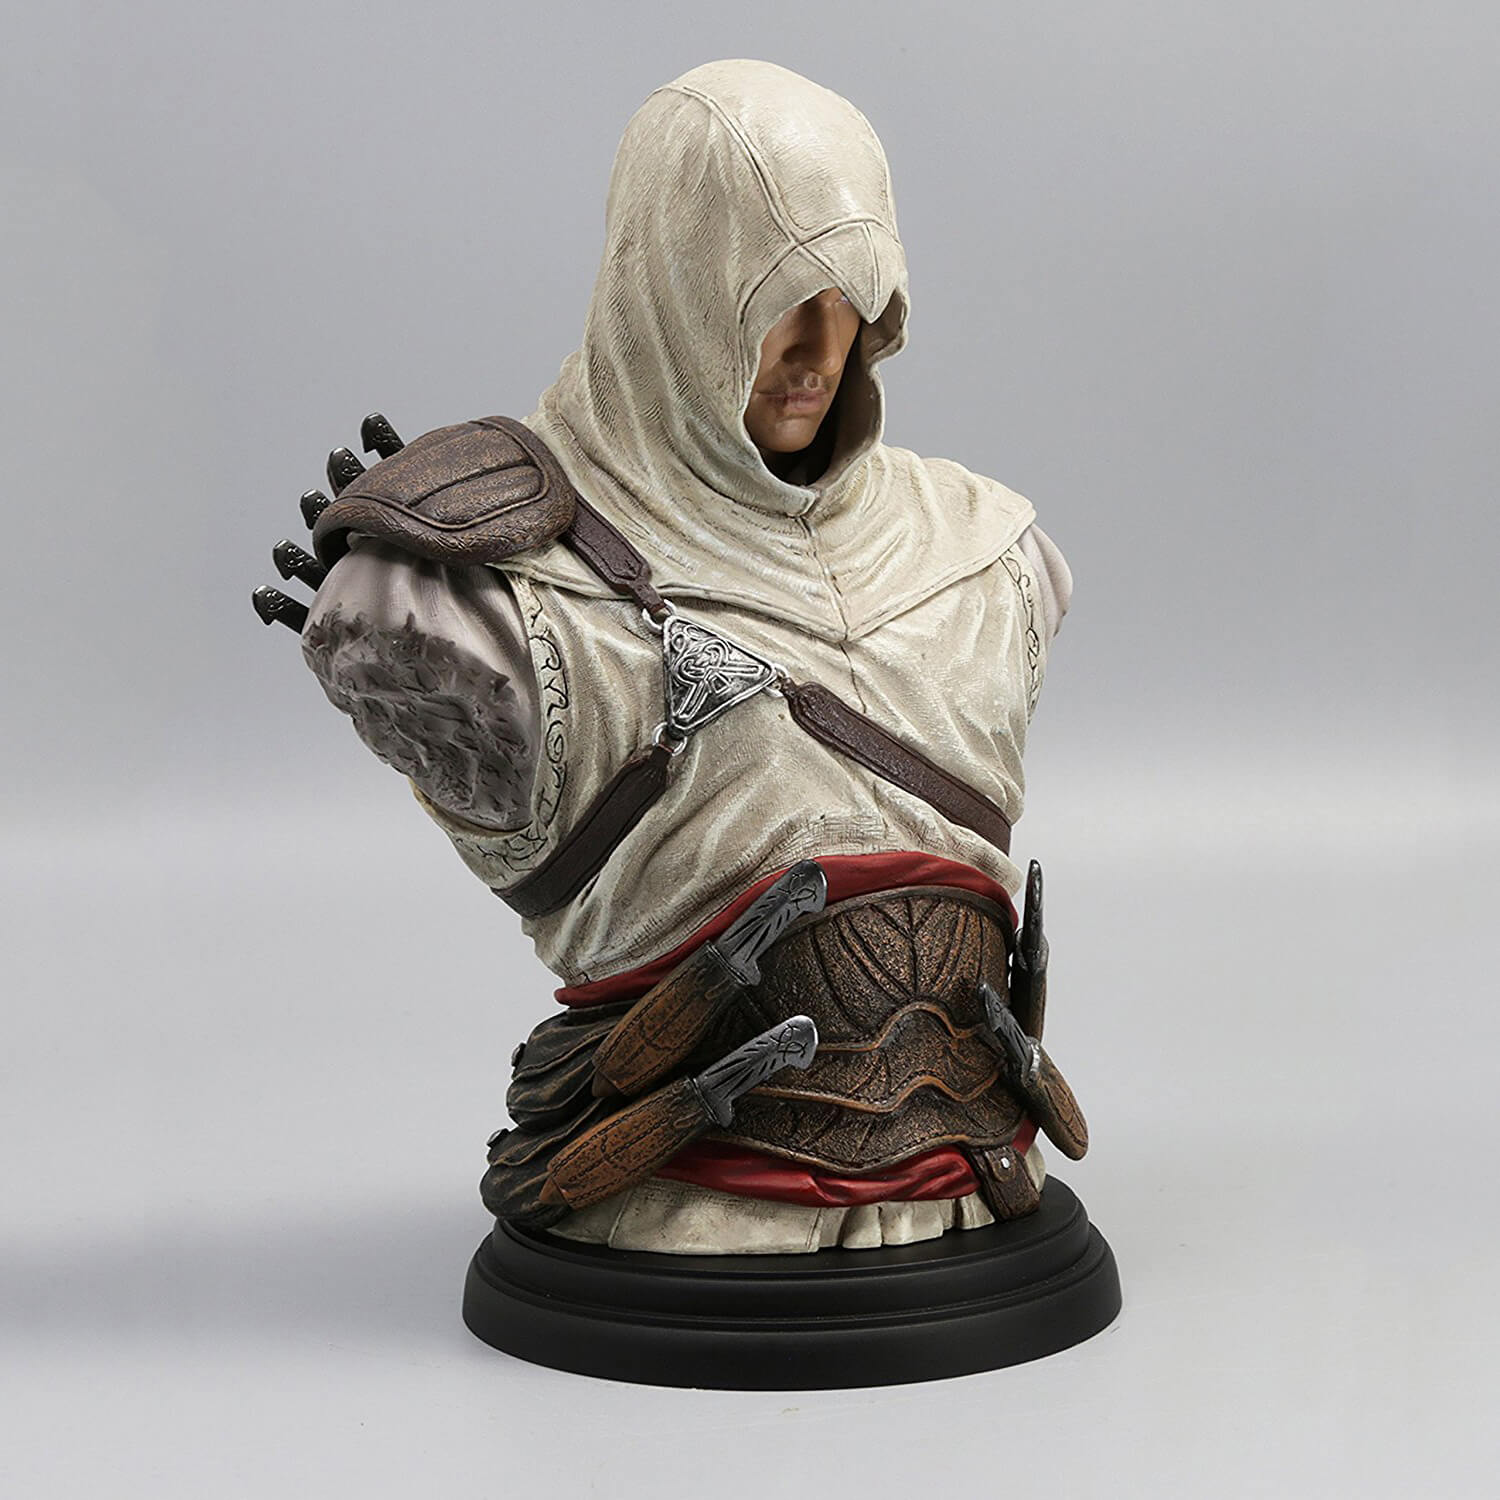 Ubisoft Assassin's Creed Altair action figures